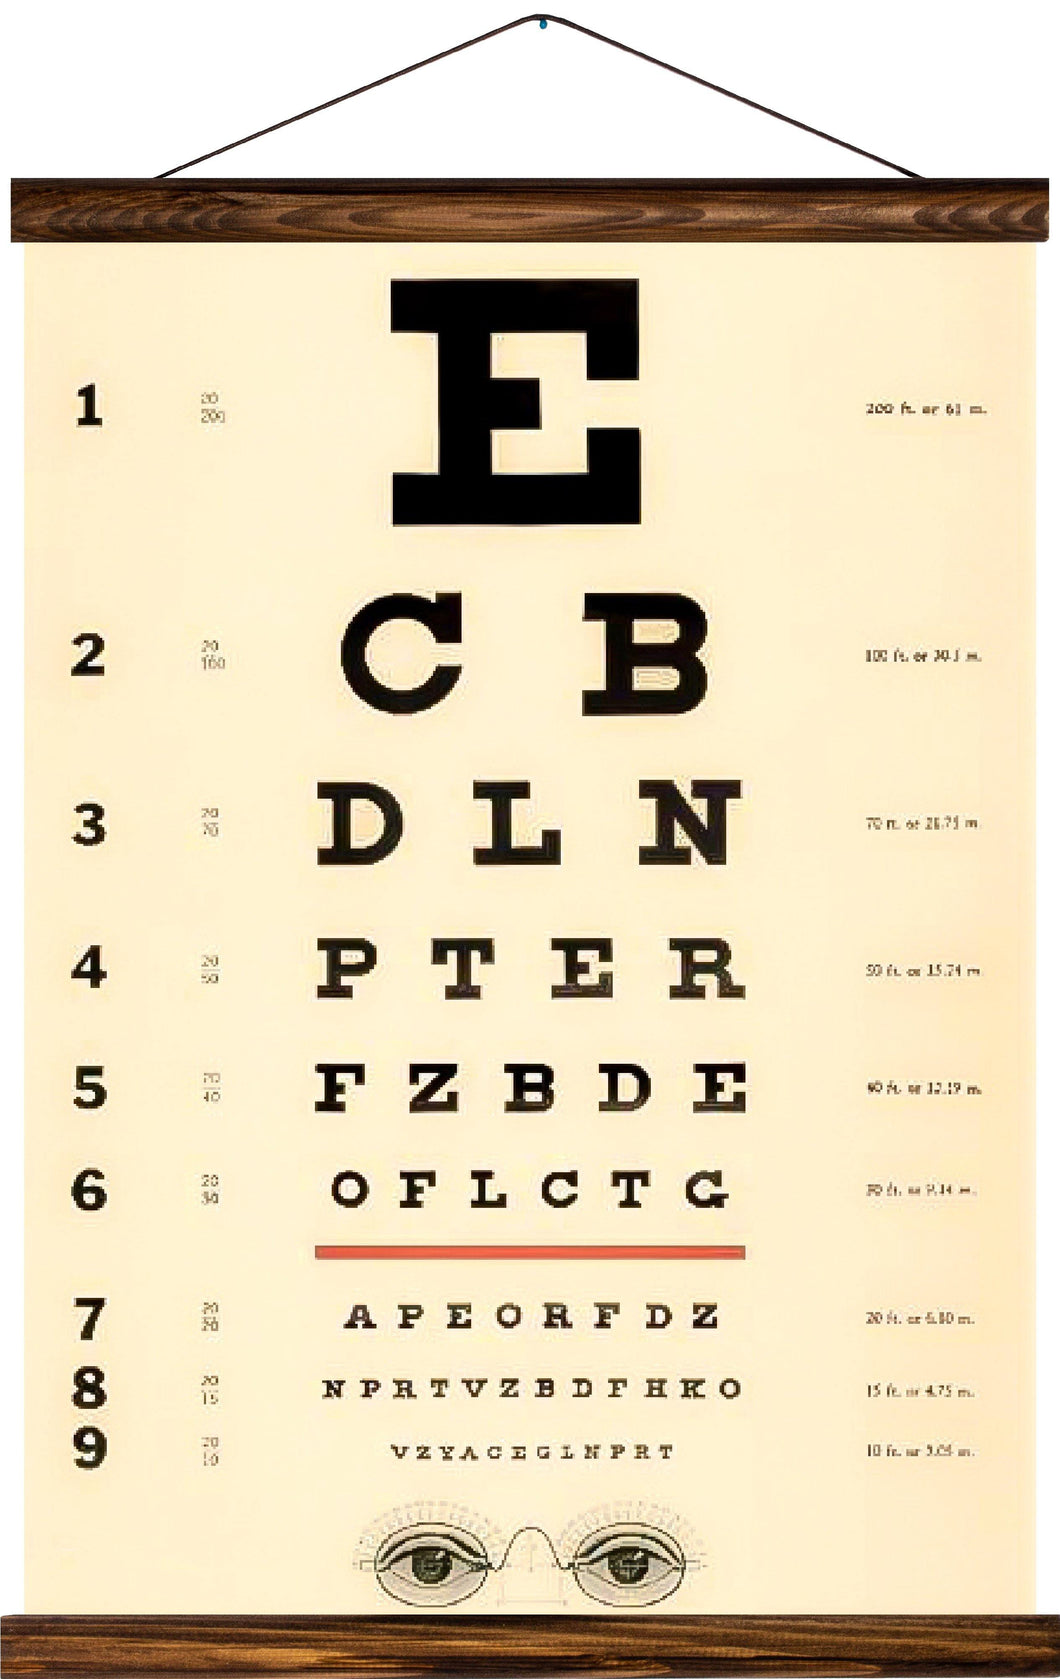 Eye chart, reprint on linen